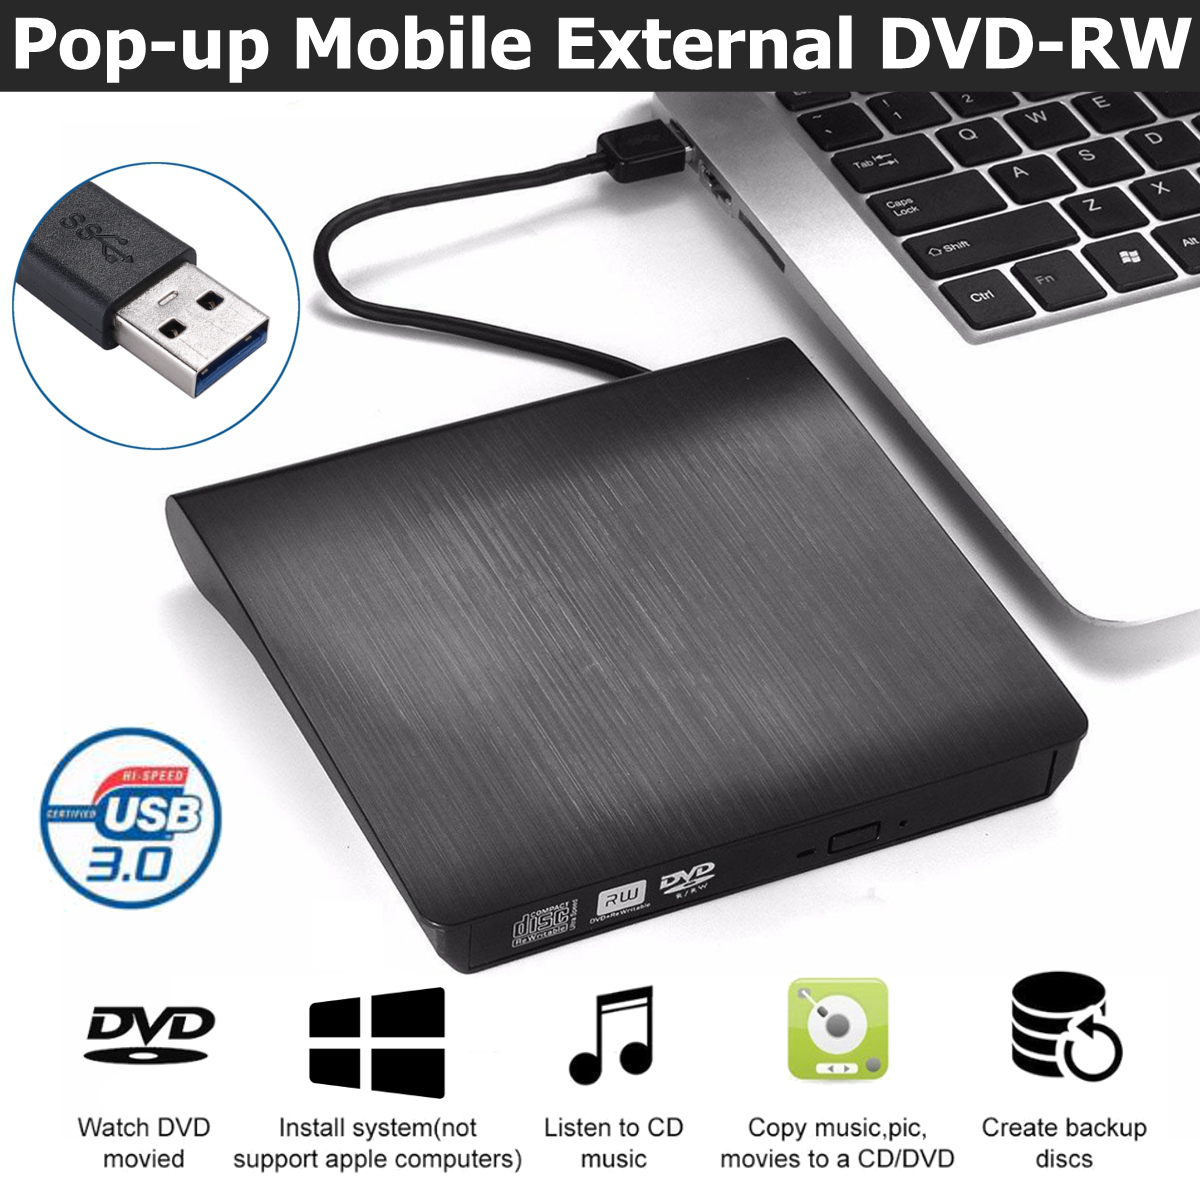 USB 3.0 Slim External DVD RW CD Writer Drive Burner Reader Player Optical Drives For Laptop PC(China)